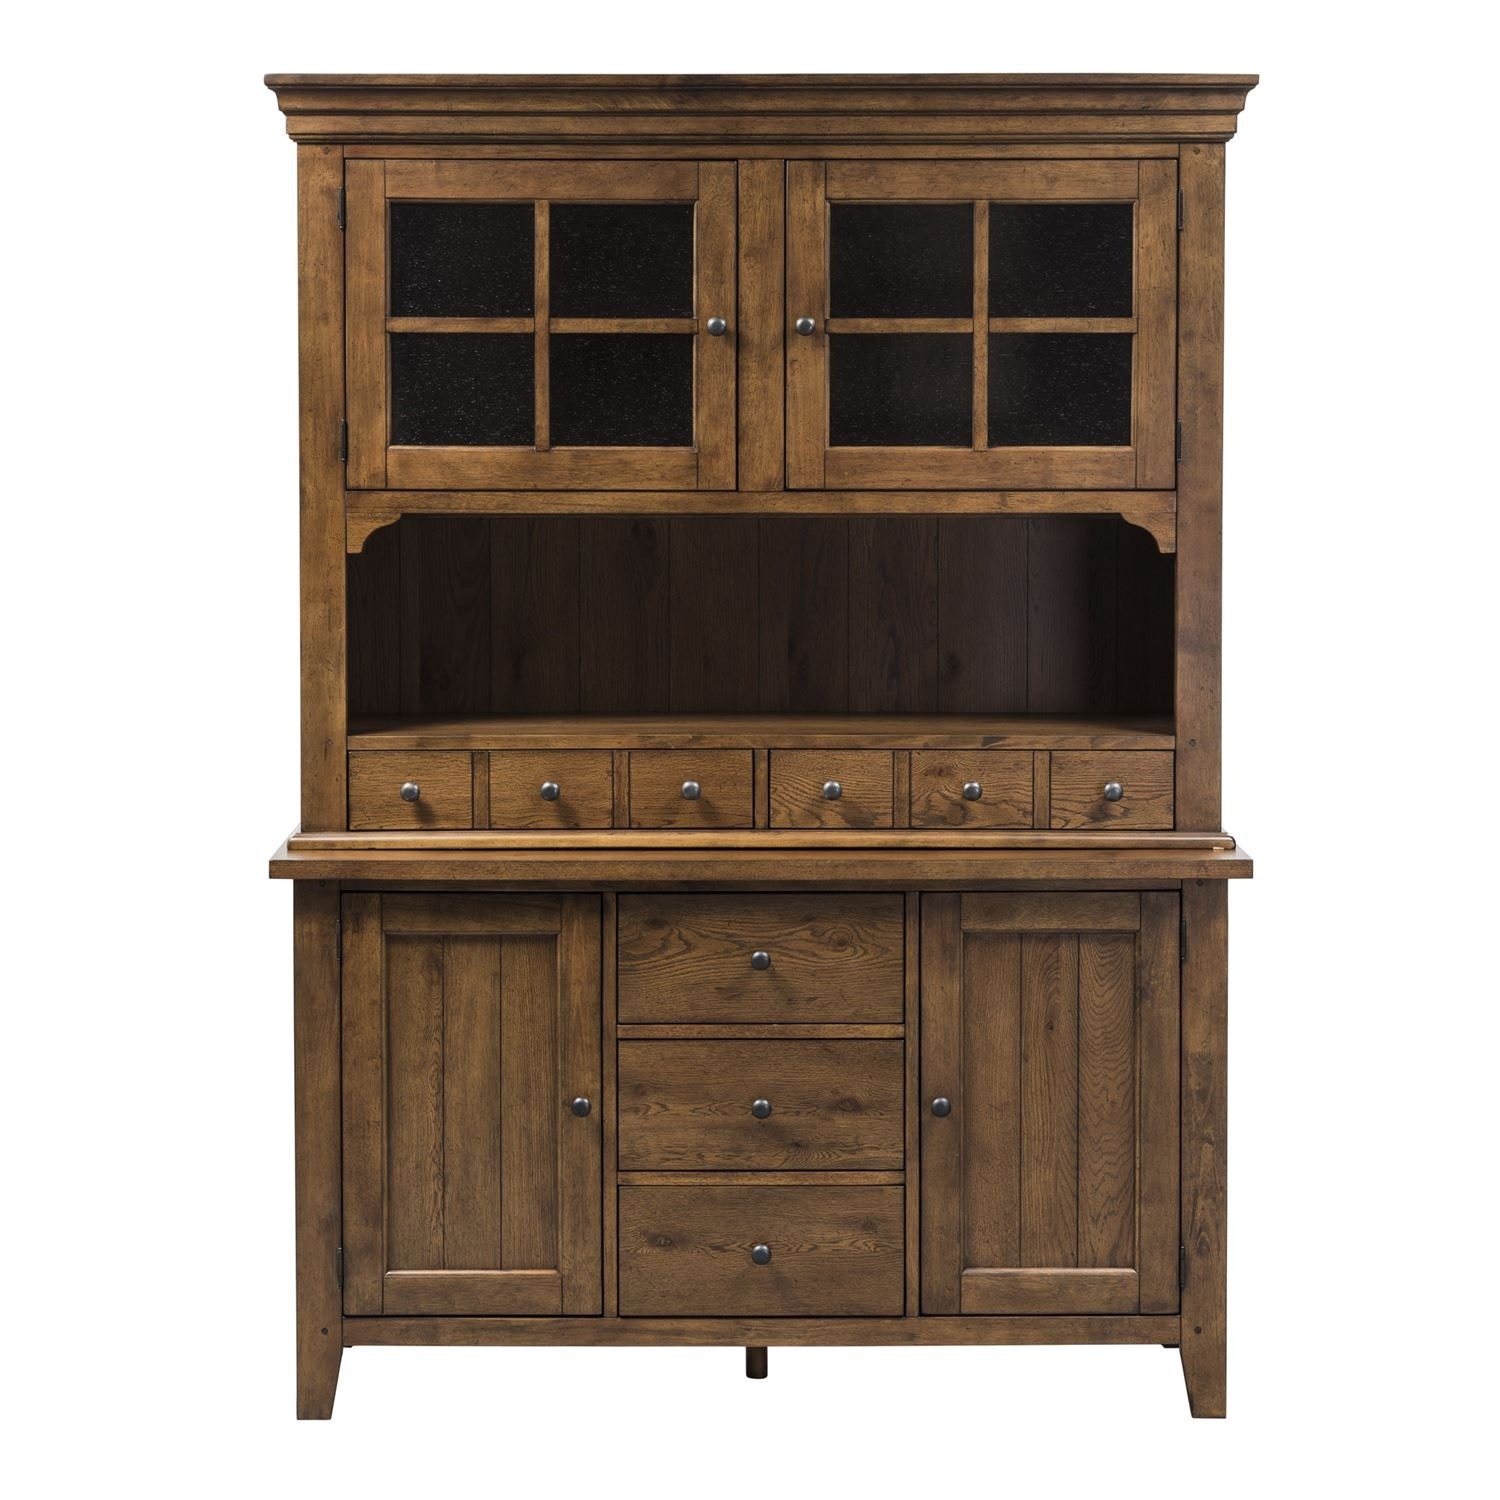 Frazier and Son Furniture & Liberty Furniture Dining Room Hutch and Buffet - Frazier and ...